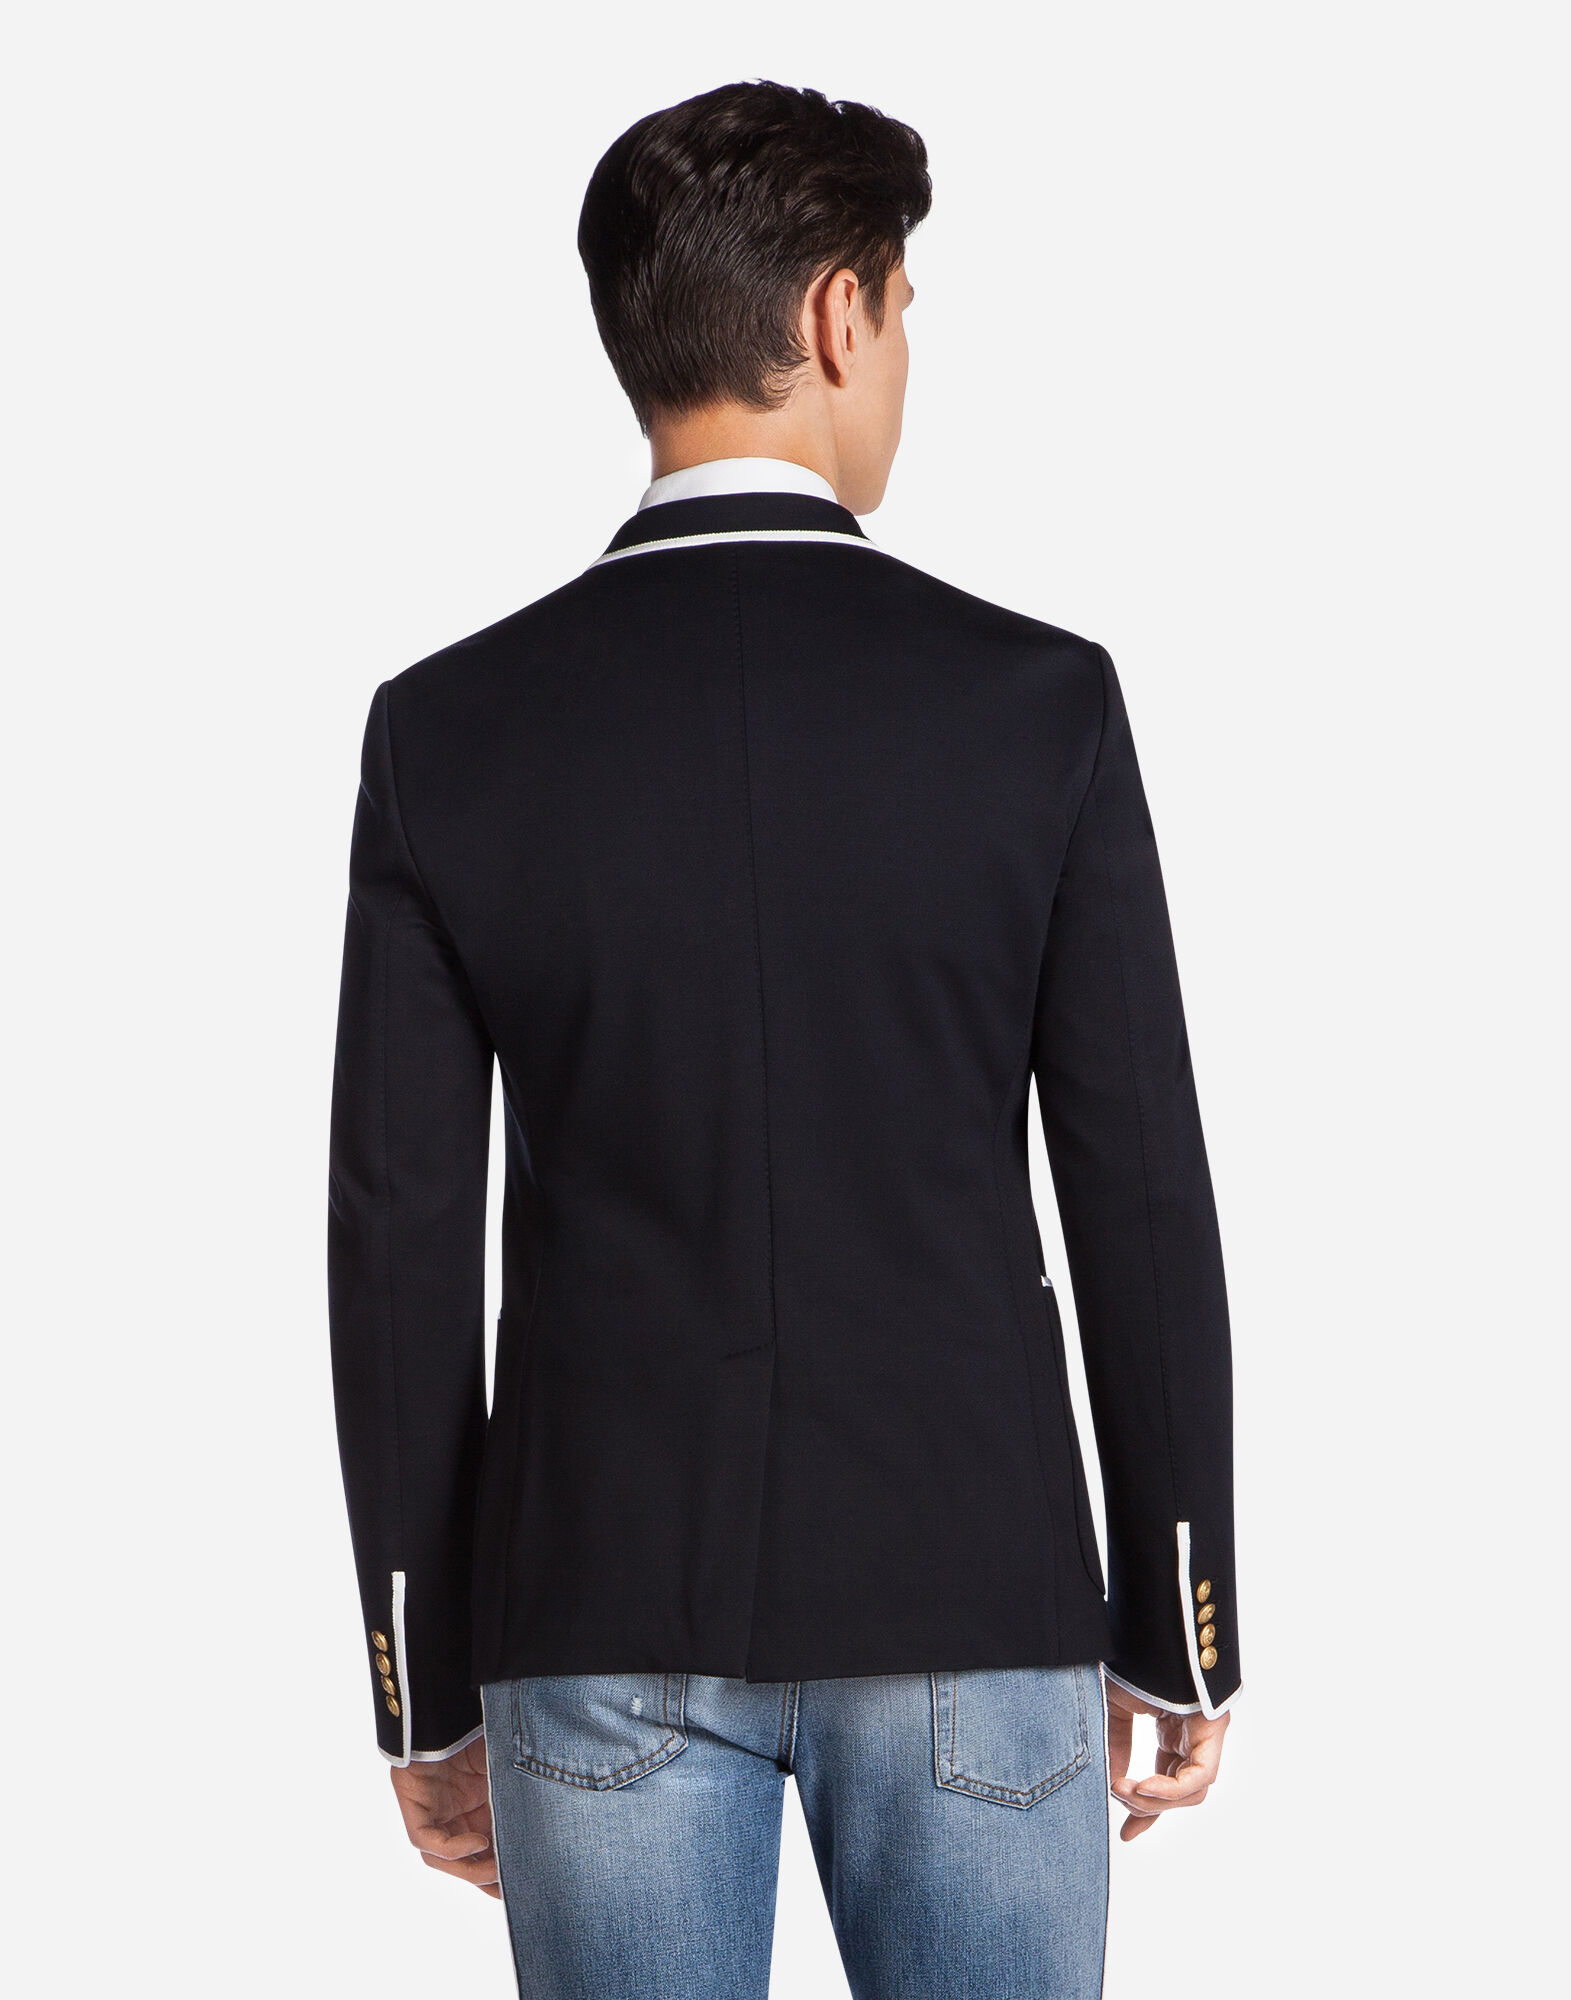 BLAZER IN JERSEY WITH BORDER